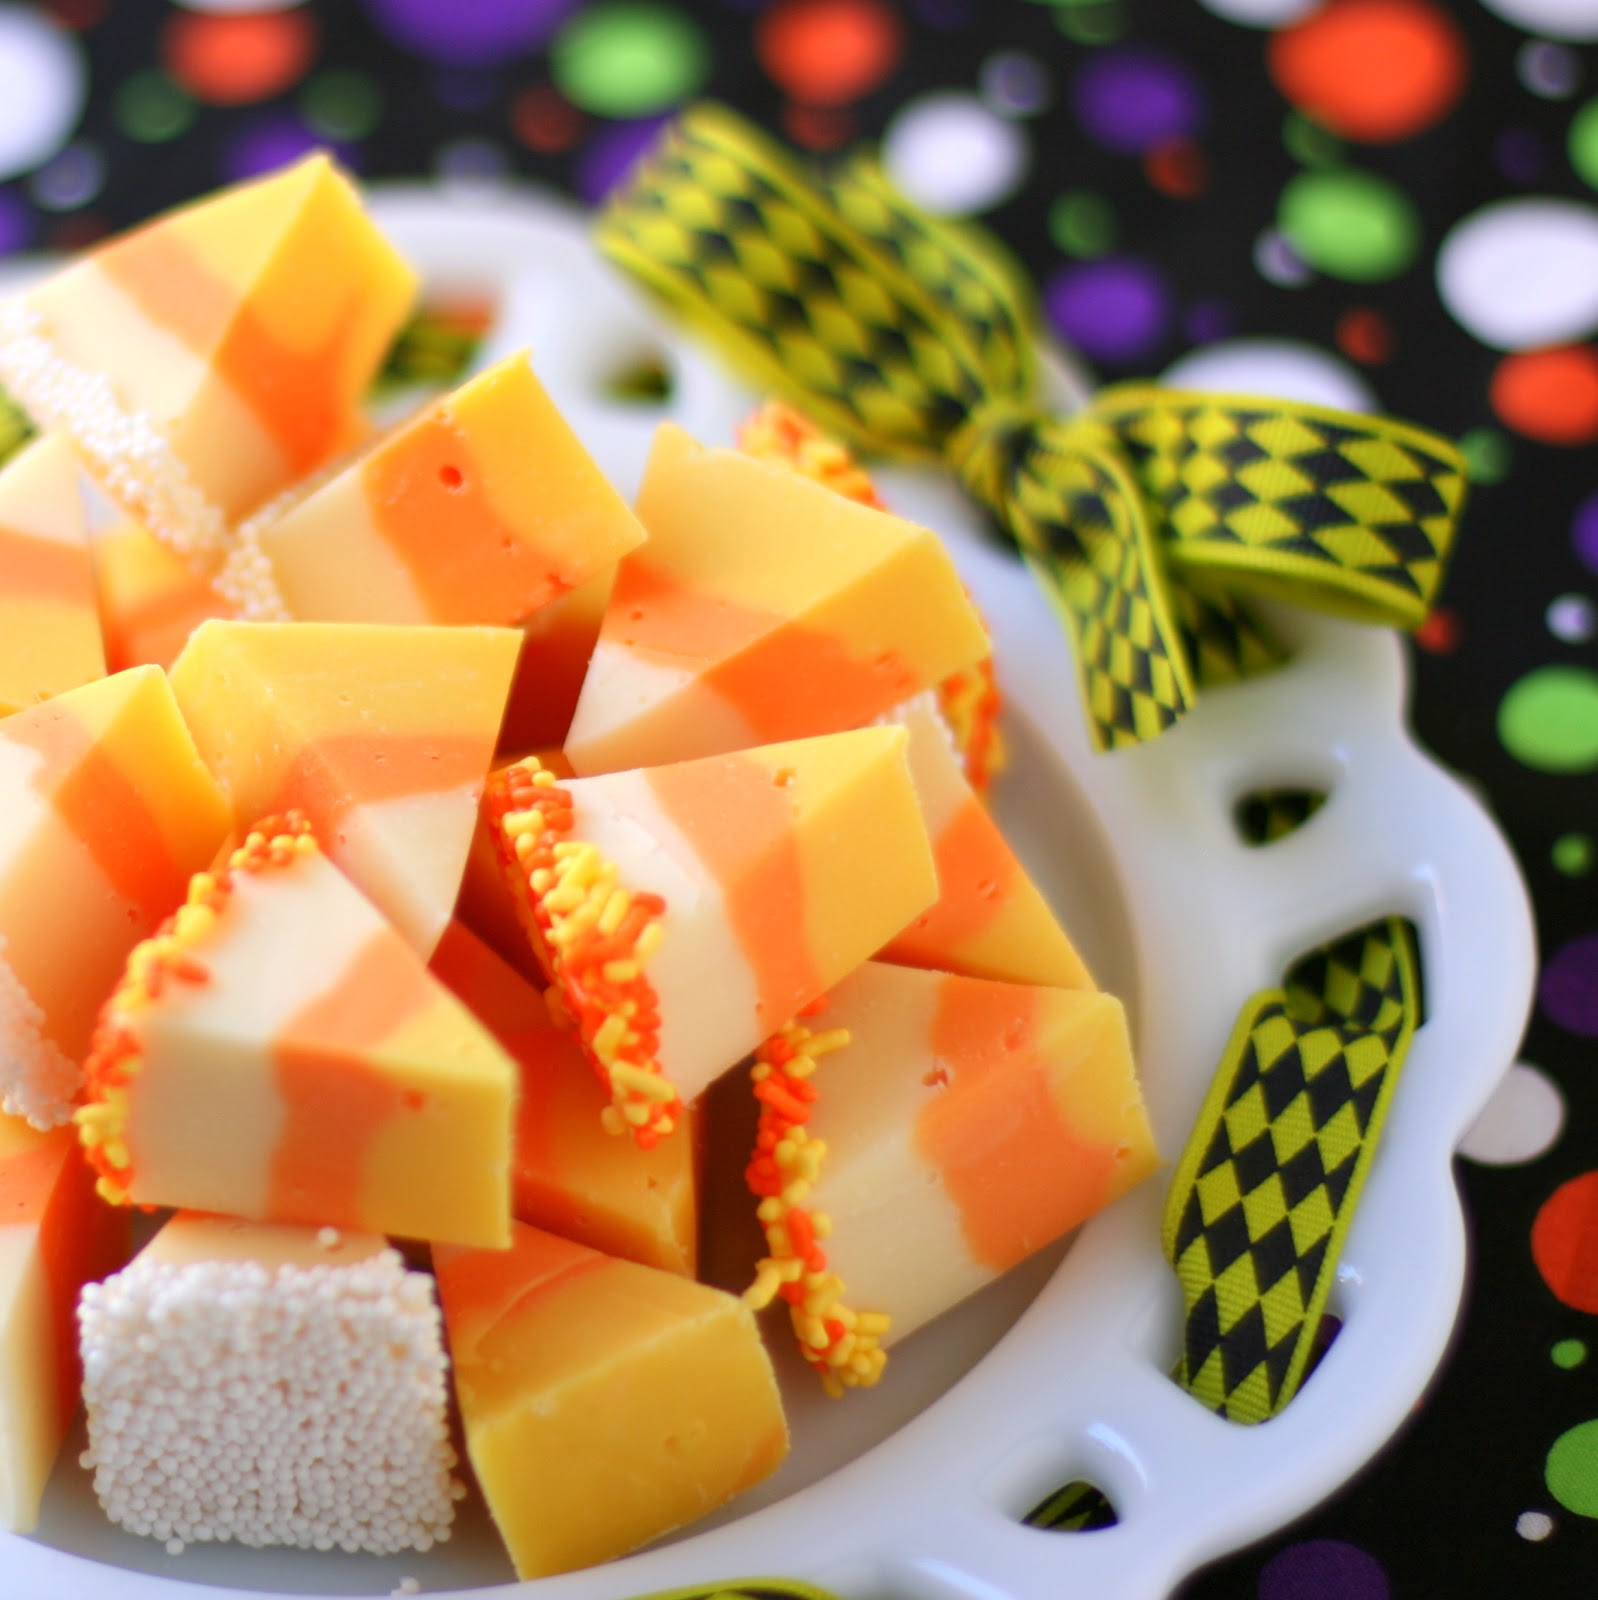 Thread: White Chocolate Candy Corn Fudge